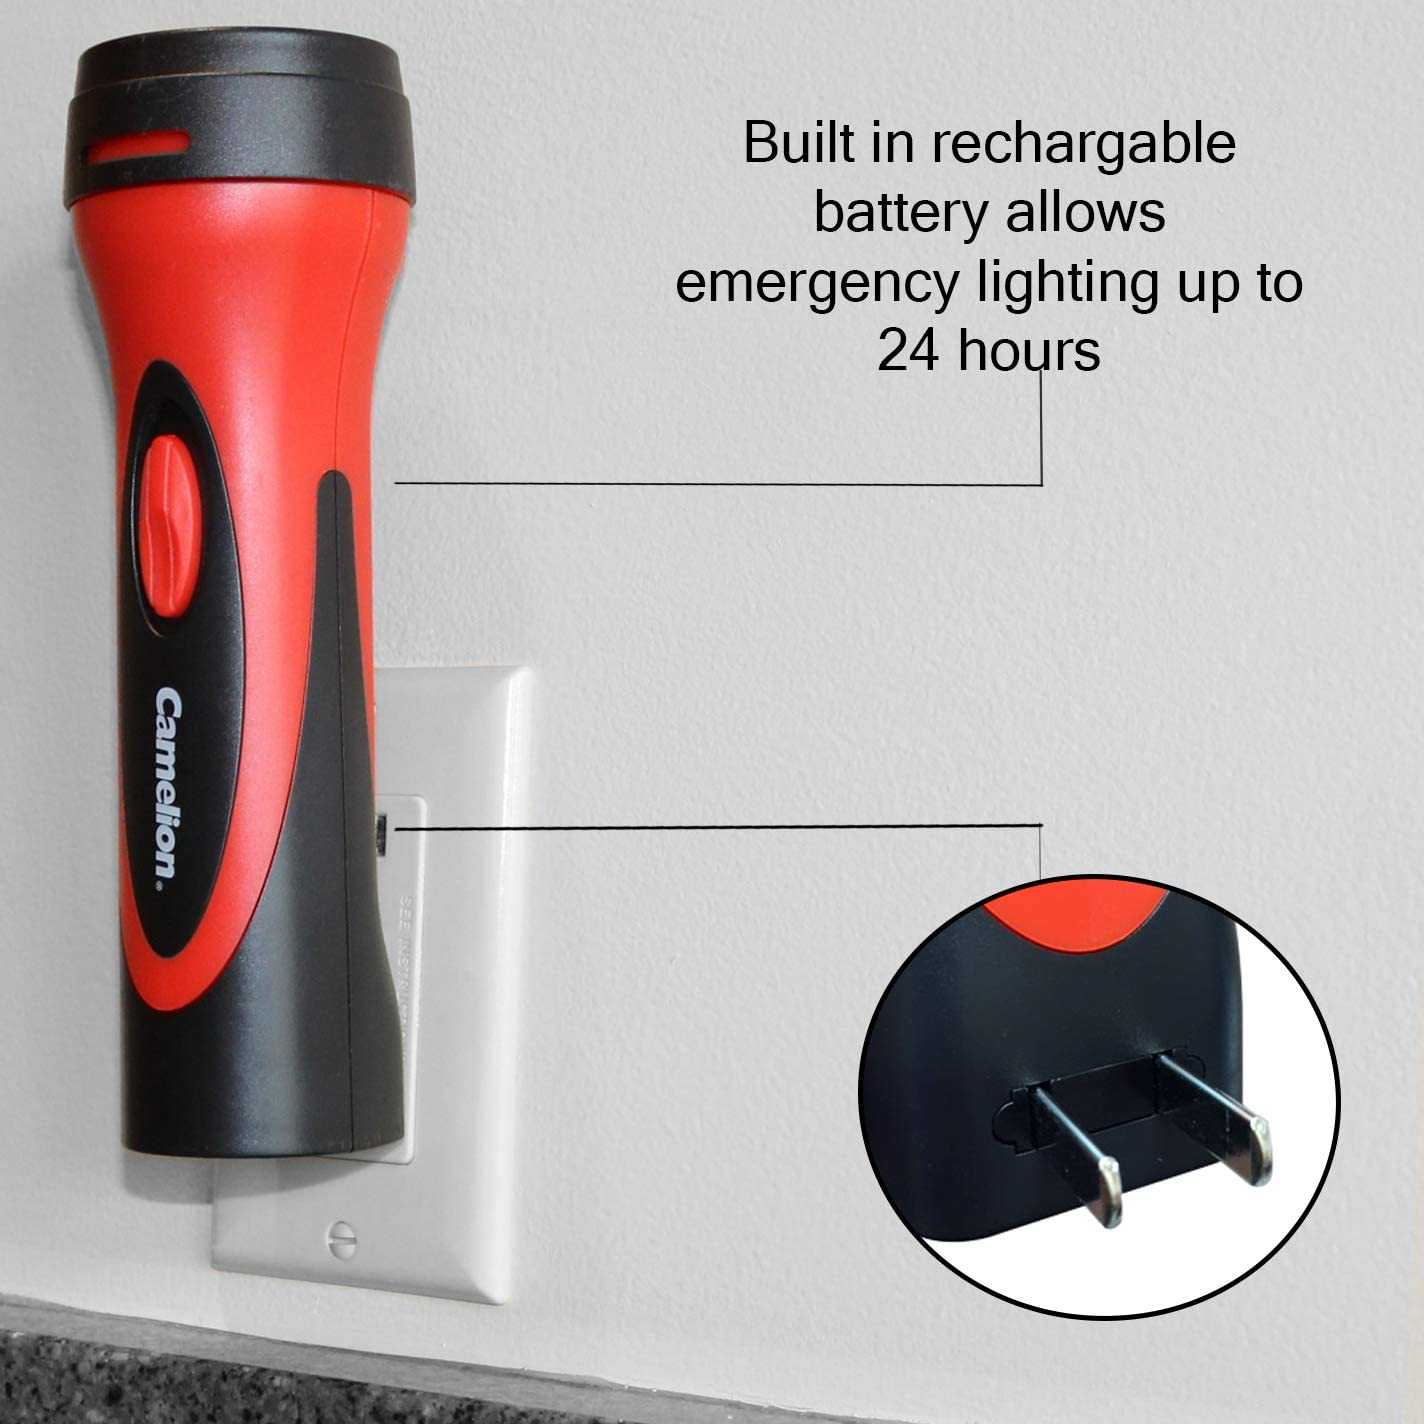 Camelion 6 LED Plug in Rechargeable Emergency Blackout Flashlight 2 Count up to 24 Hours of Continuous Lighting